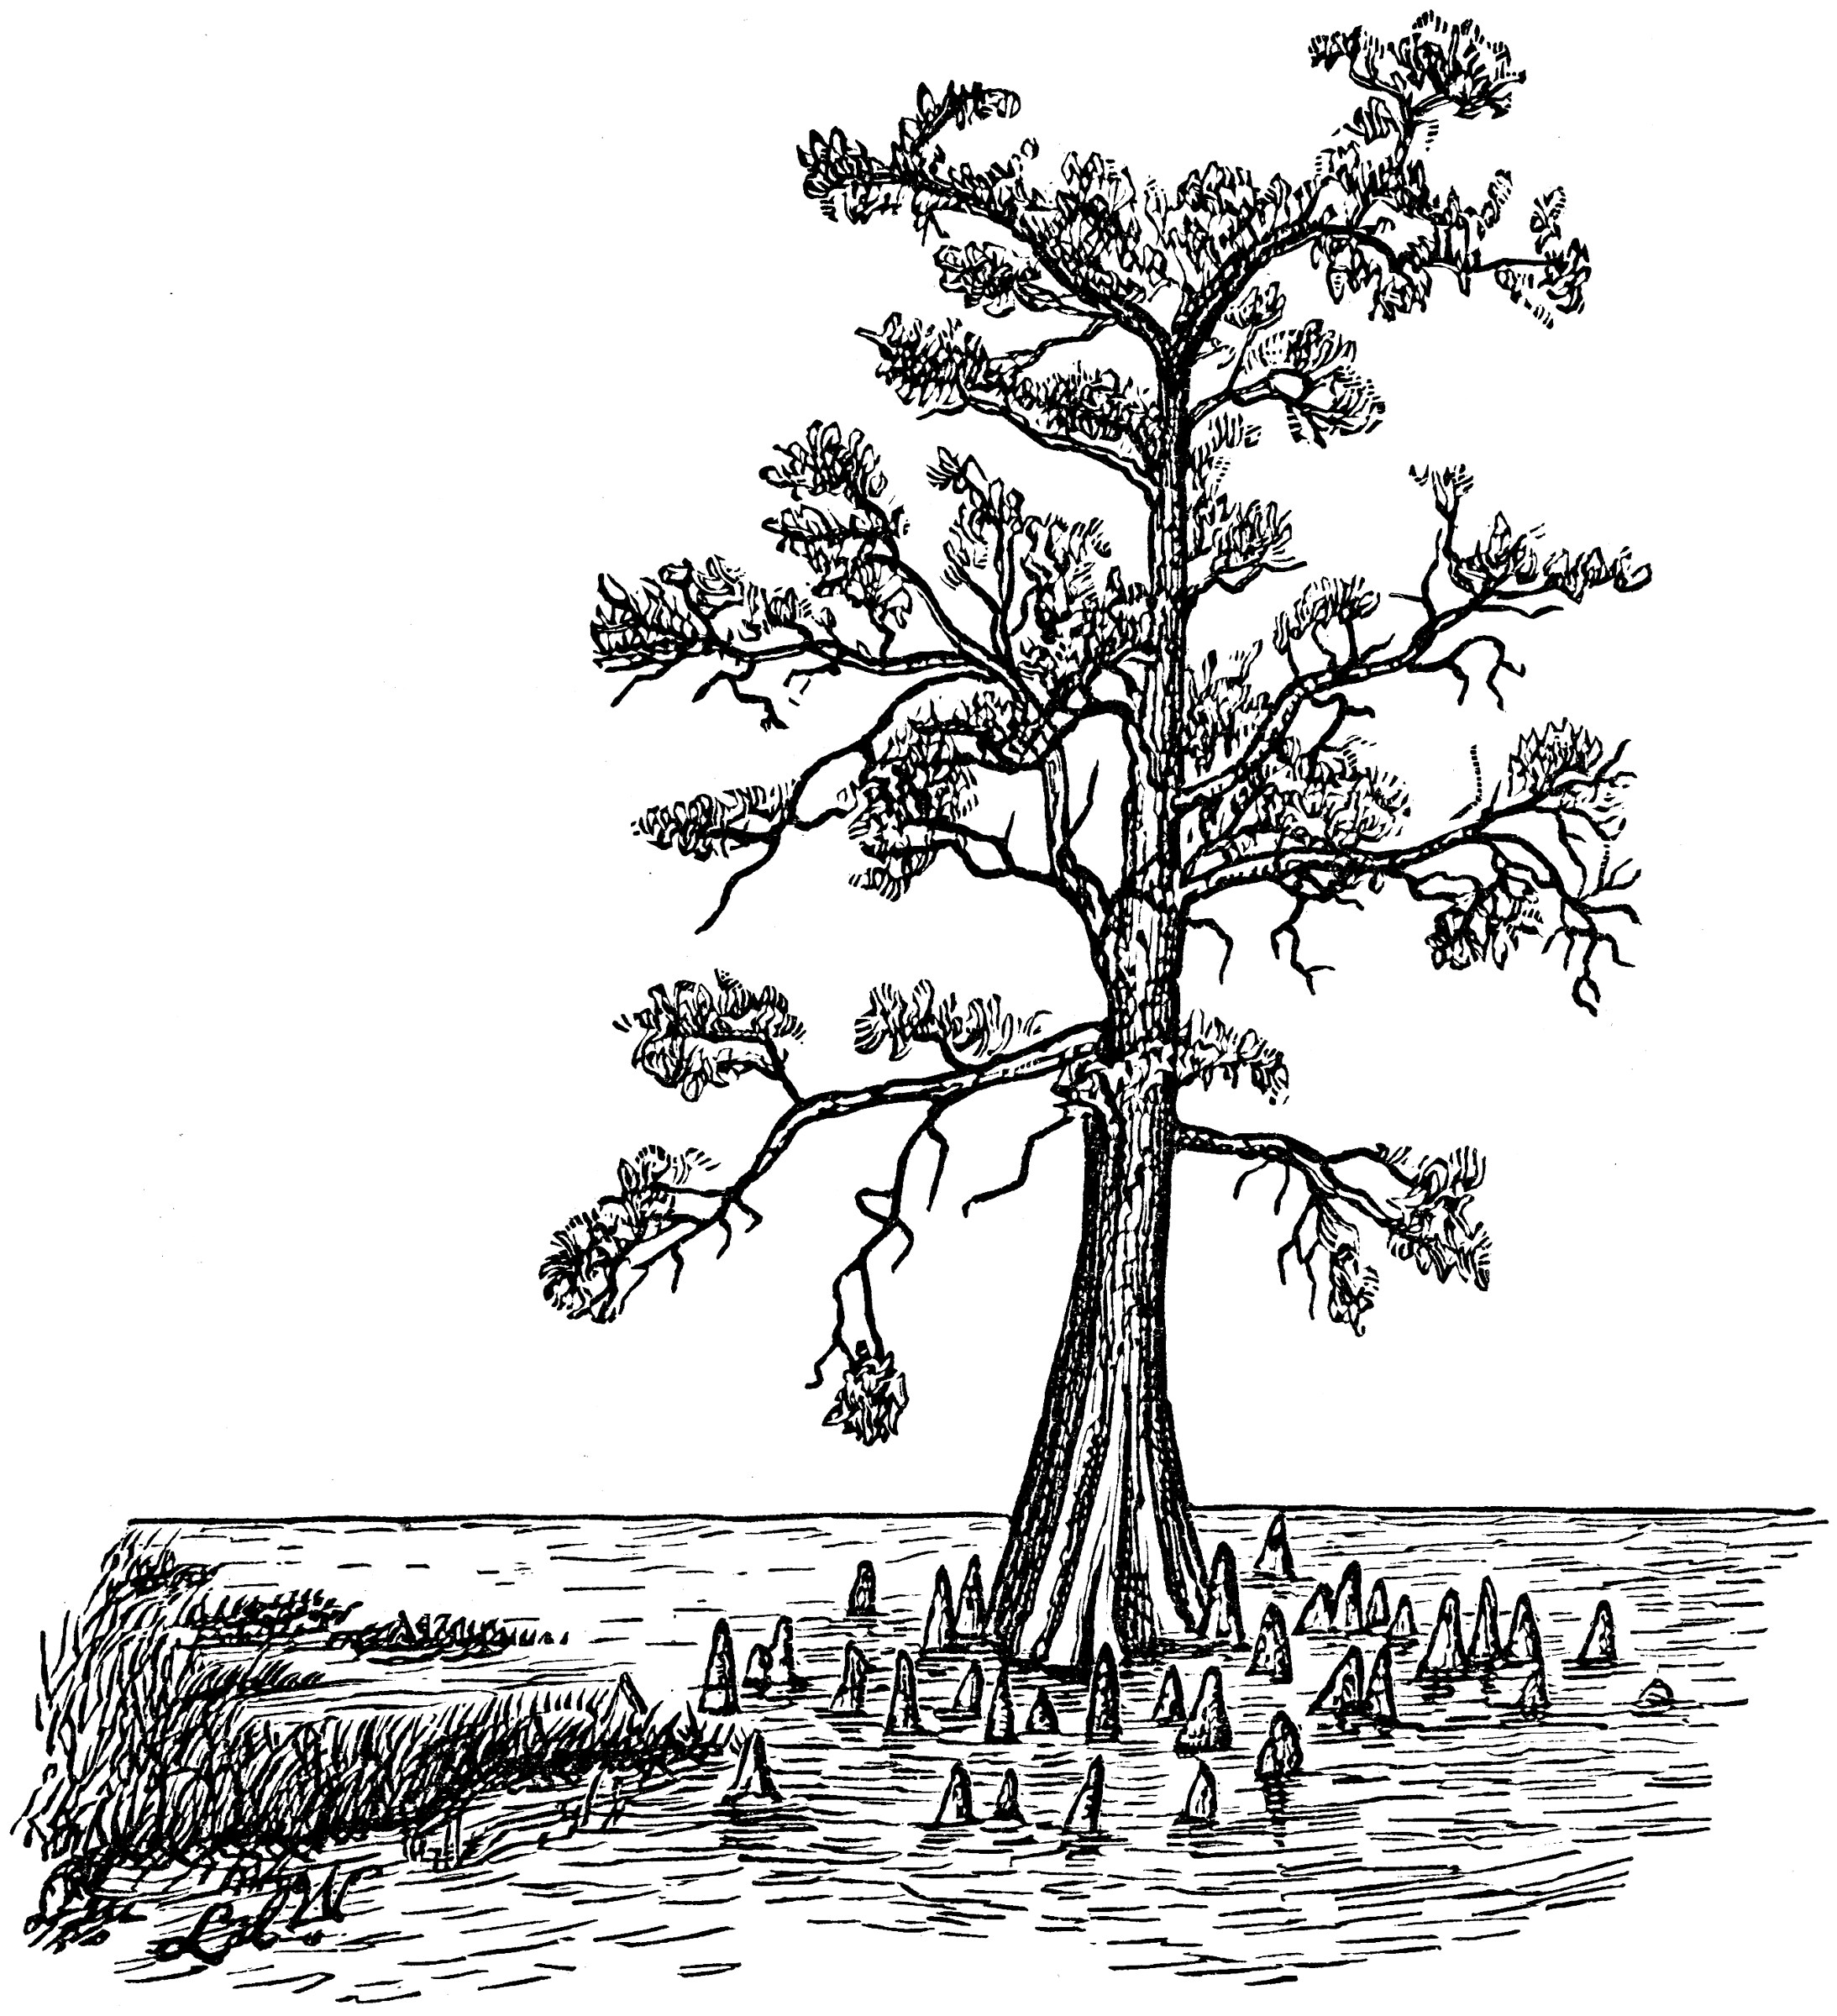 Bald Cypress in Swamp Form | ClipArt ETC